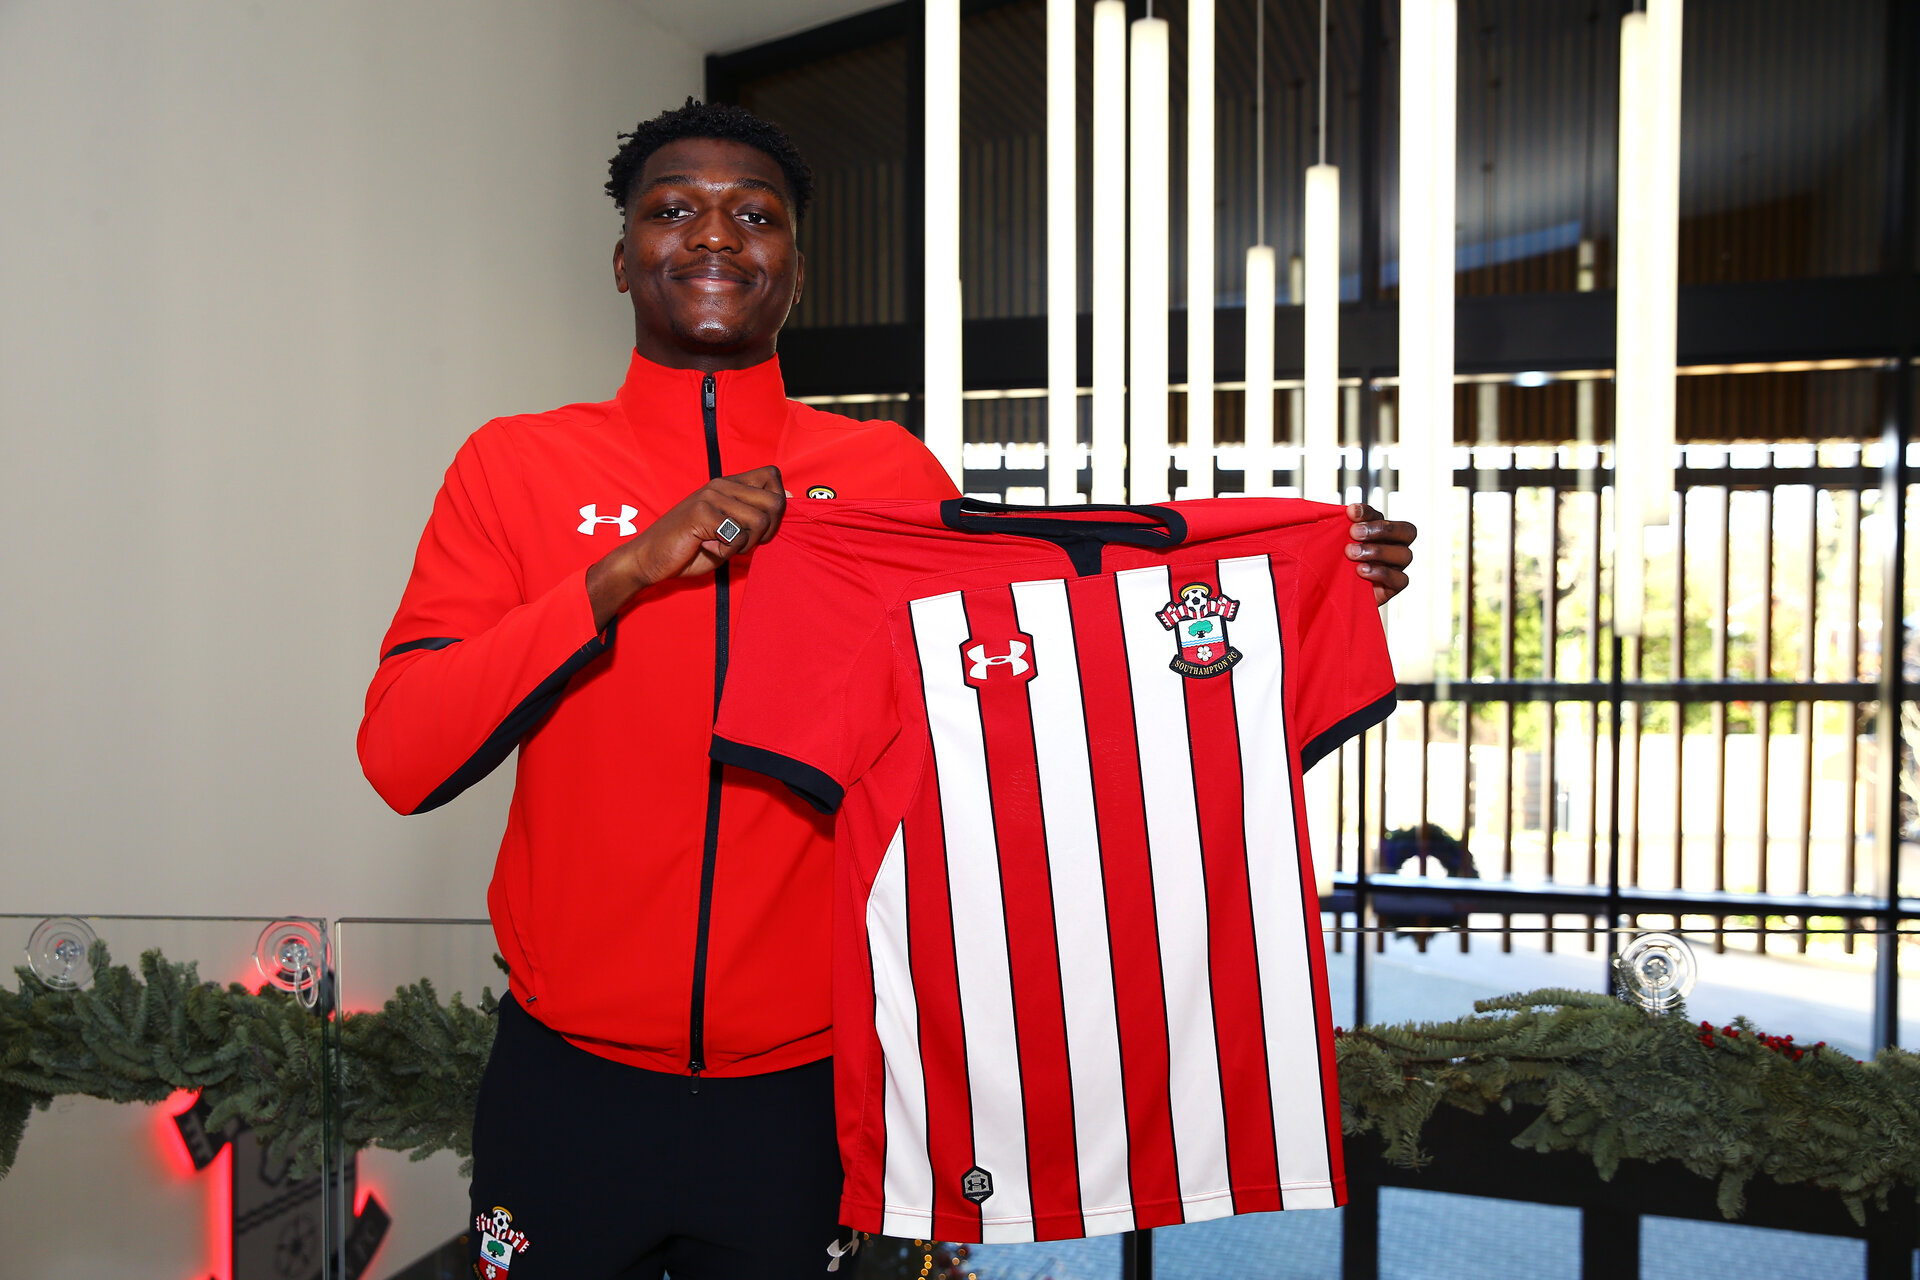 SOUTHAMPTON, ENGLAND - DECEMBER 20:  Allan TChaptchet after signing his professional contract pictured at Southampton FC at Staplewood Training Ground on December 17, 2018 in Southampton, United Kingdom. (Photo by James Bridle - Southampton FC/Southampton FC via Getty Images)